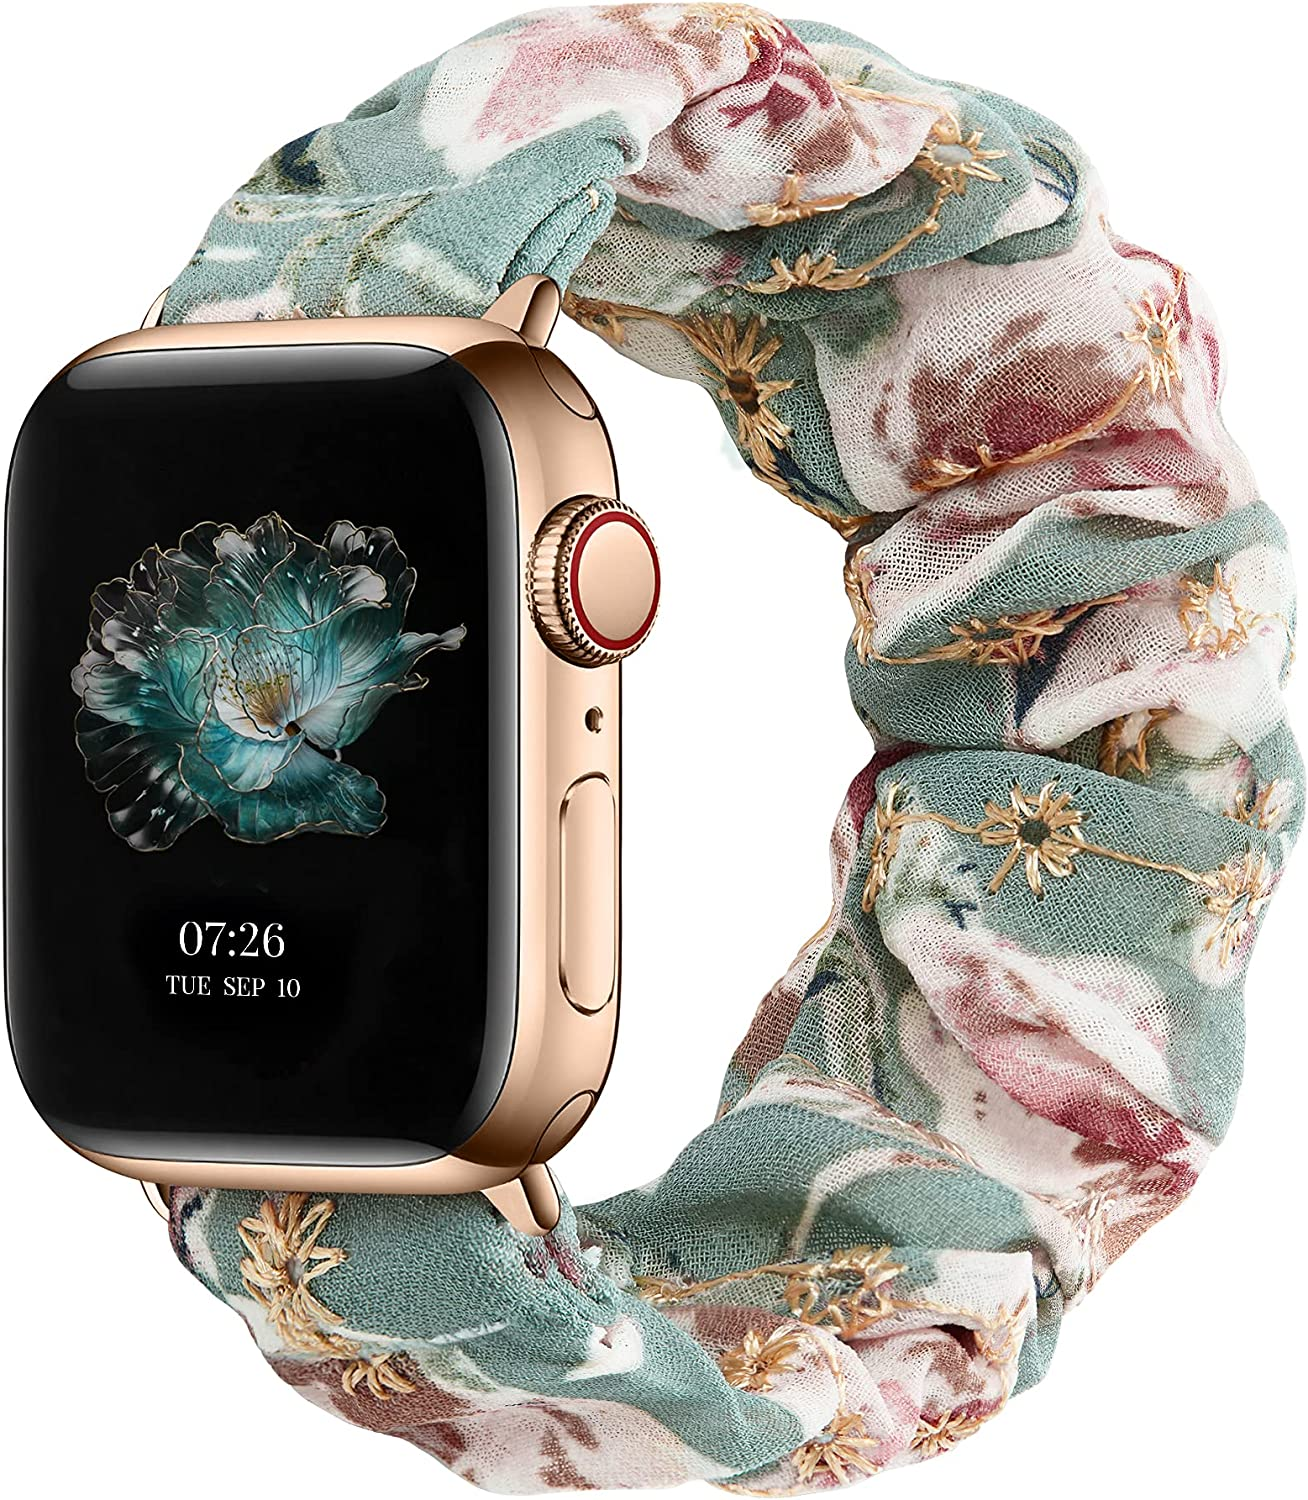 Adepoy Band Compatible for Scrunchies Apple Watch Band 38mm 42mm 40mm 44mm Lace Elastic Watch Bands Women Breathable Scrunchy Bands for iWatch Series 6 5 4 3 2 1 SE